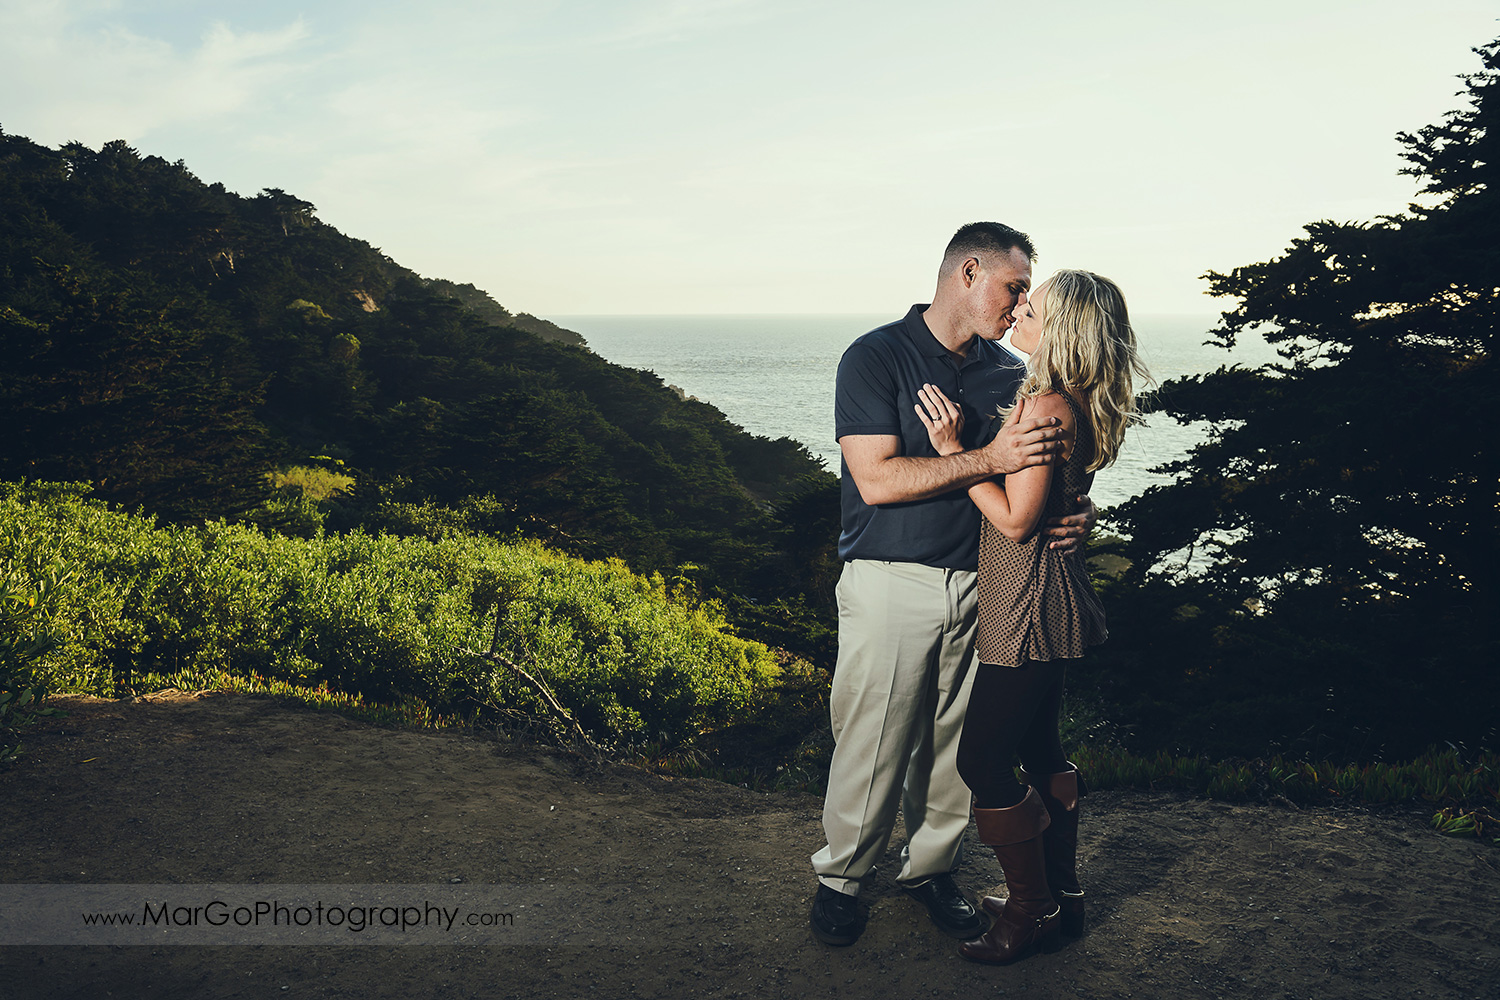 man in navy blue shirt and woman in brown tunic kissing during engagement session at San Francisco Lands End